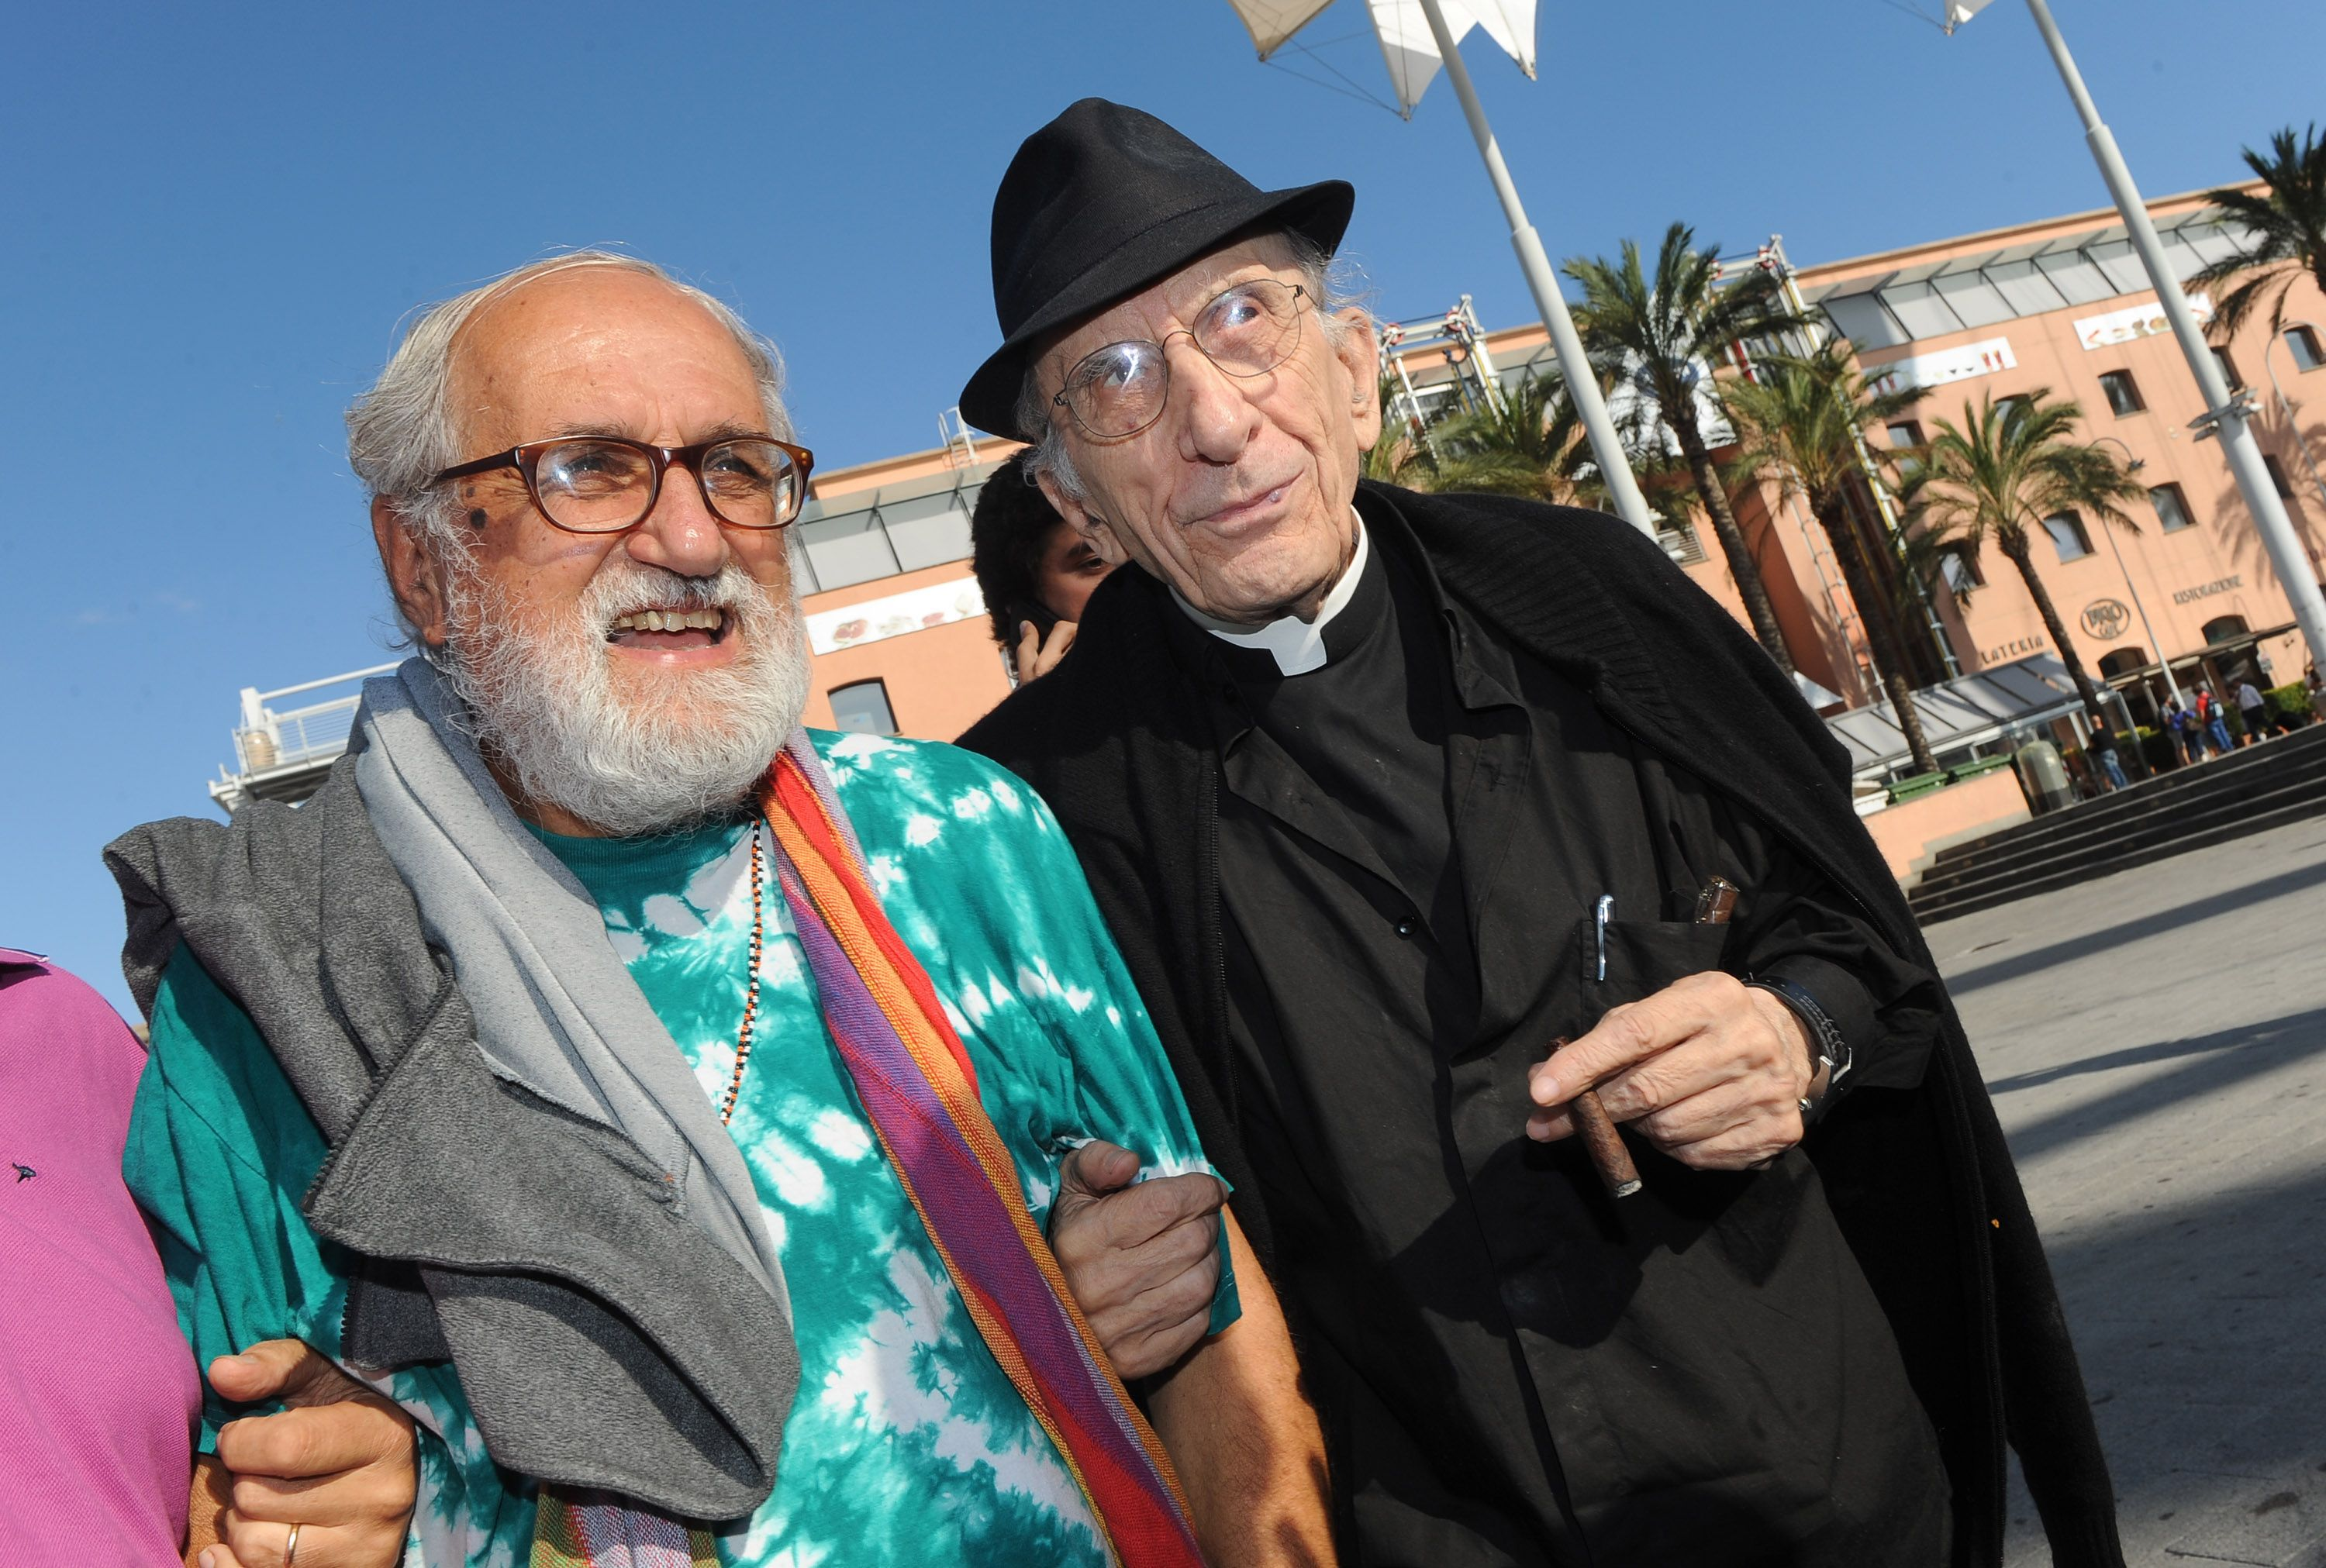 Padre Alex Zanotelli e il compianto Don Andrea Gallo